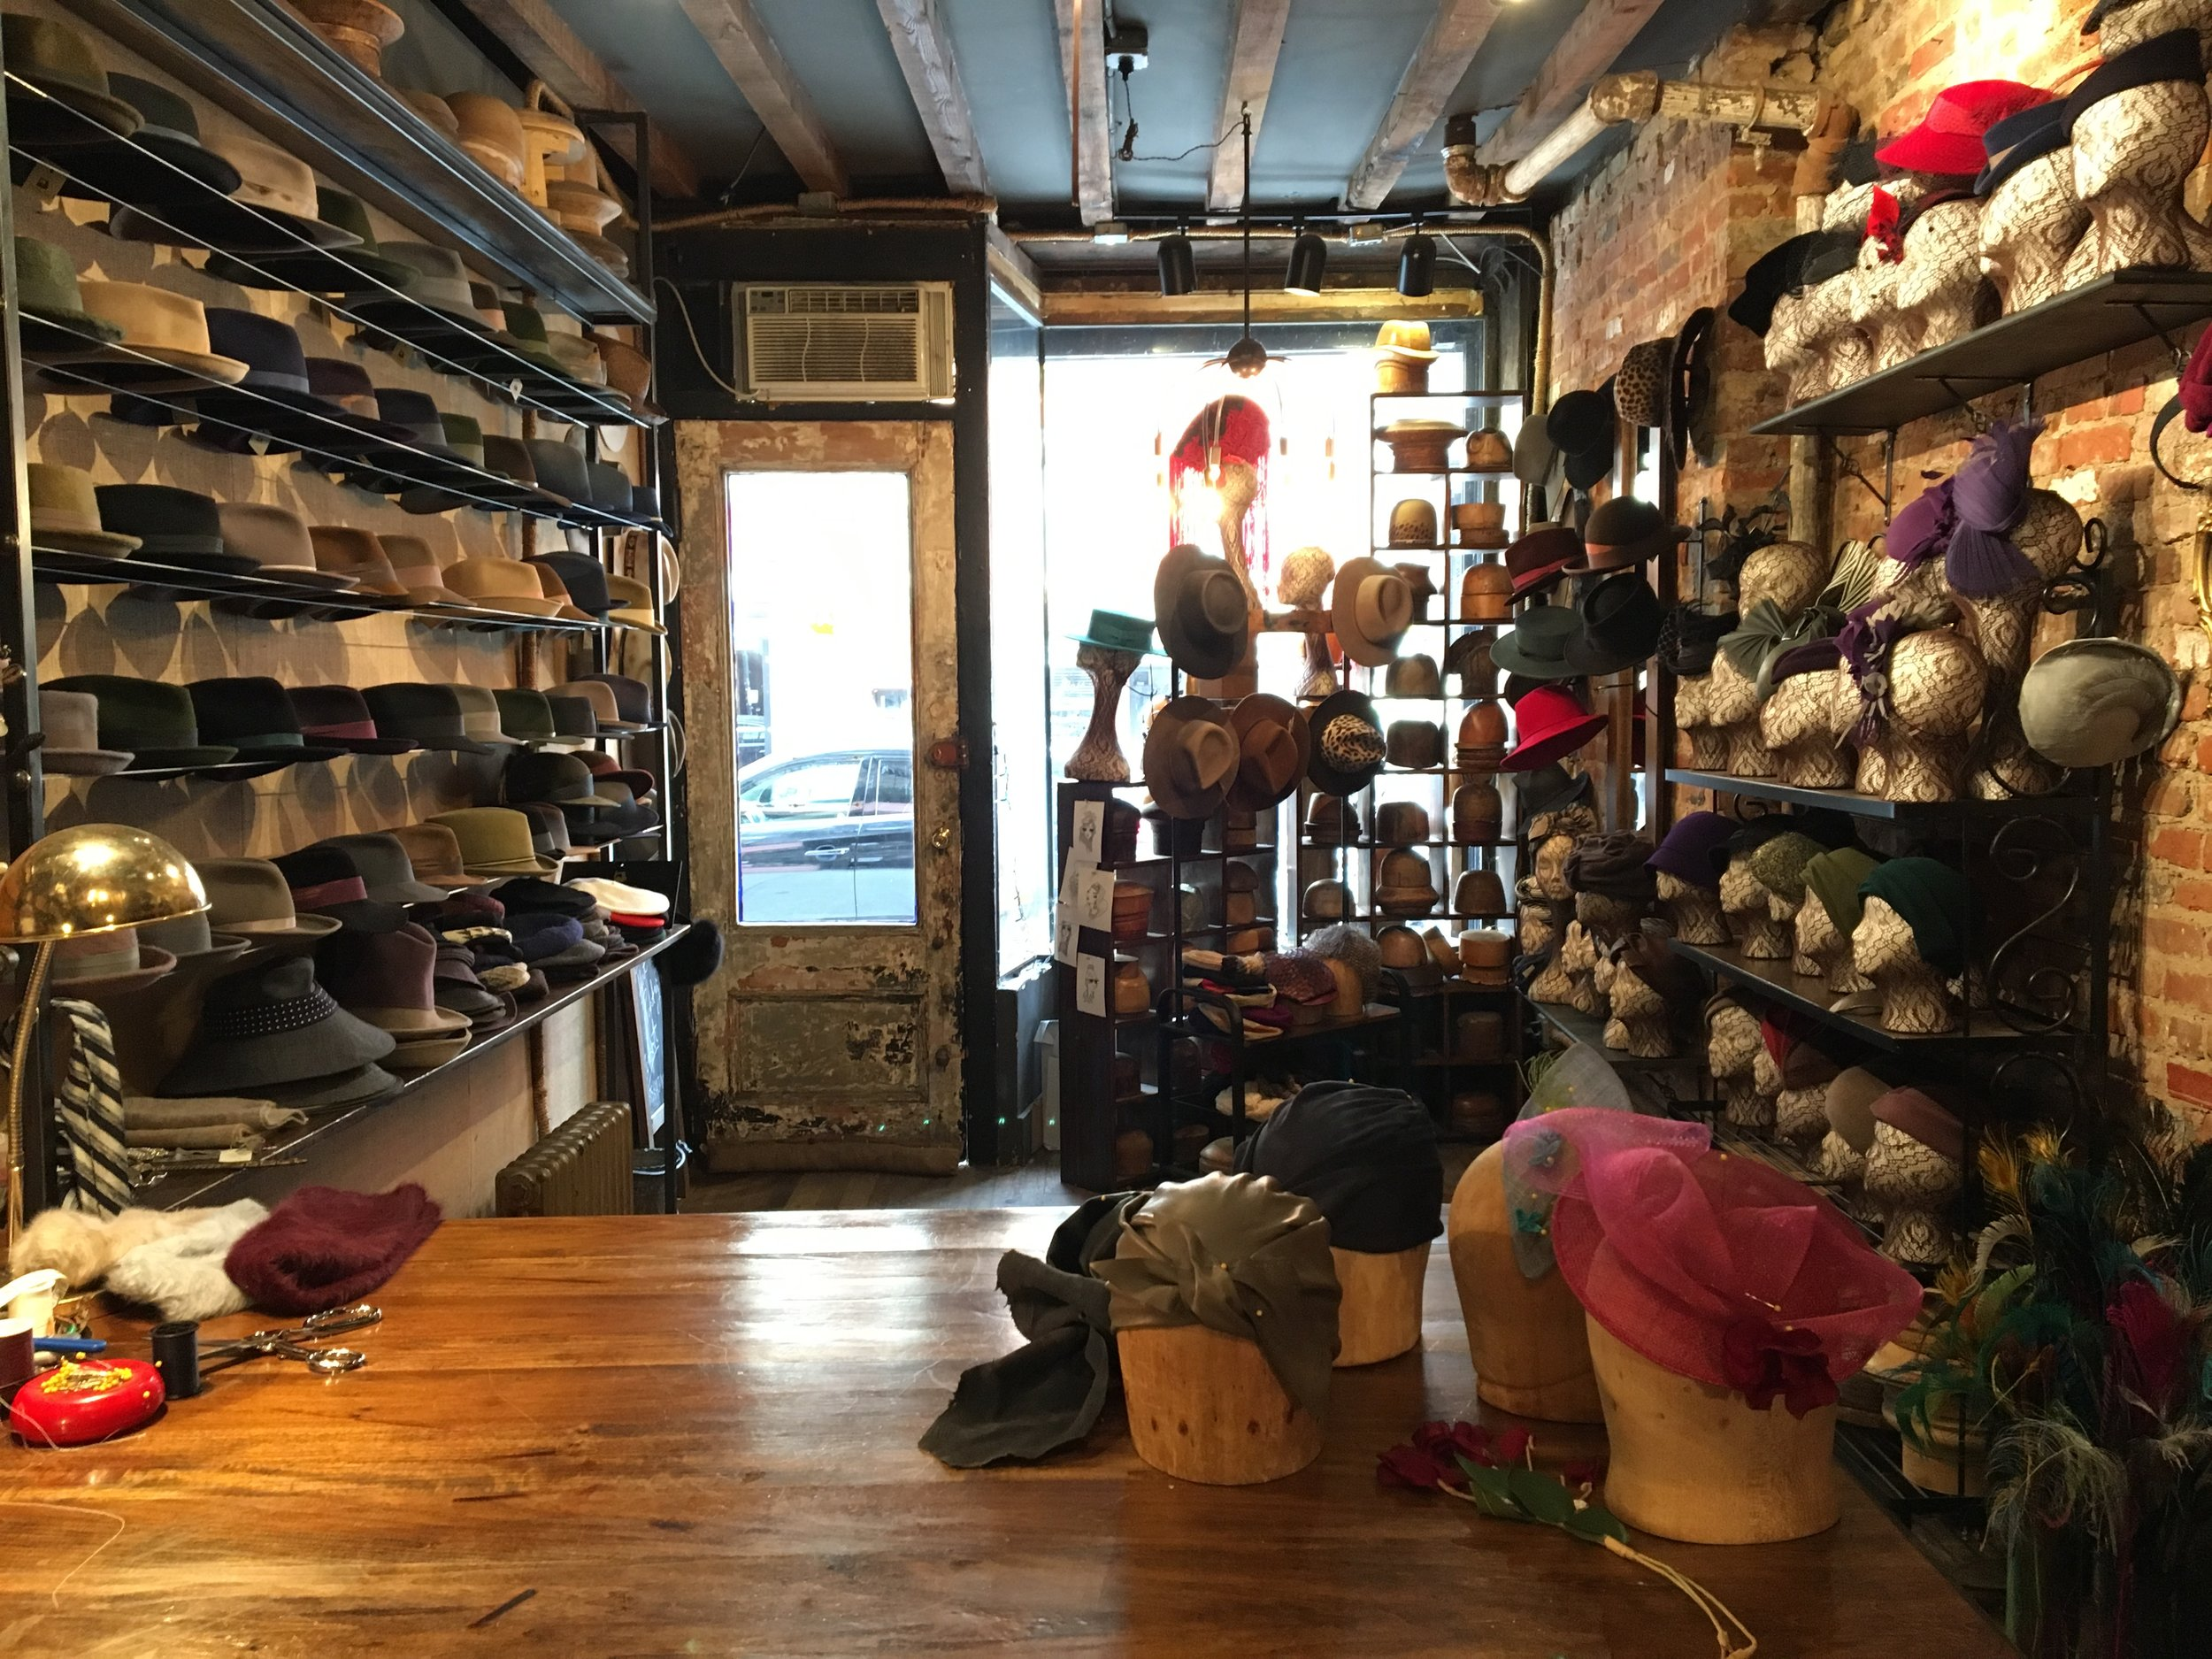 A glimpse at East Village Hats